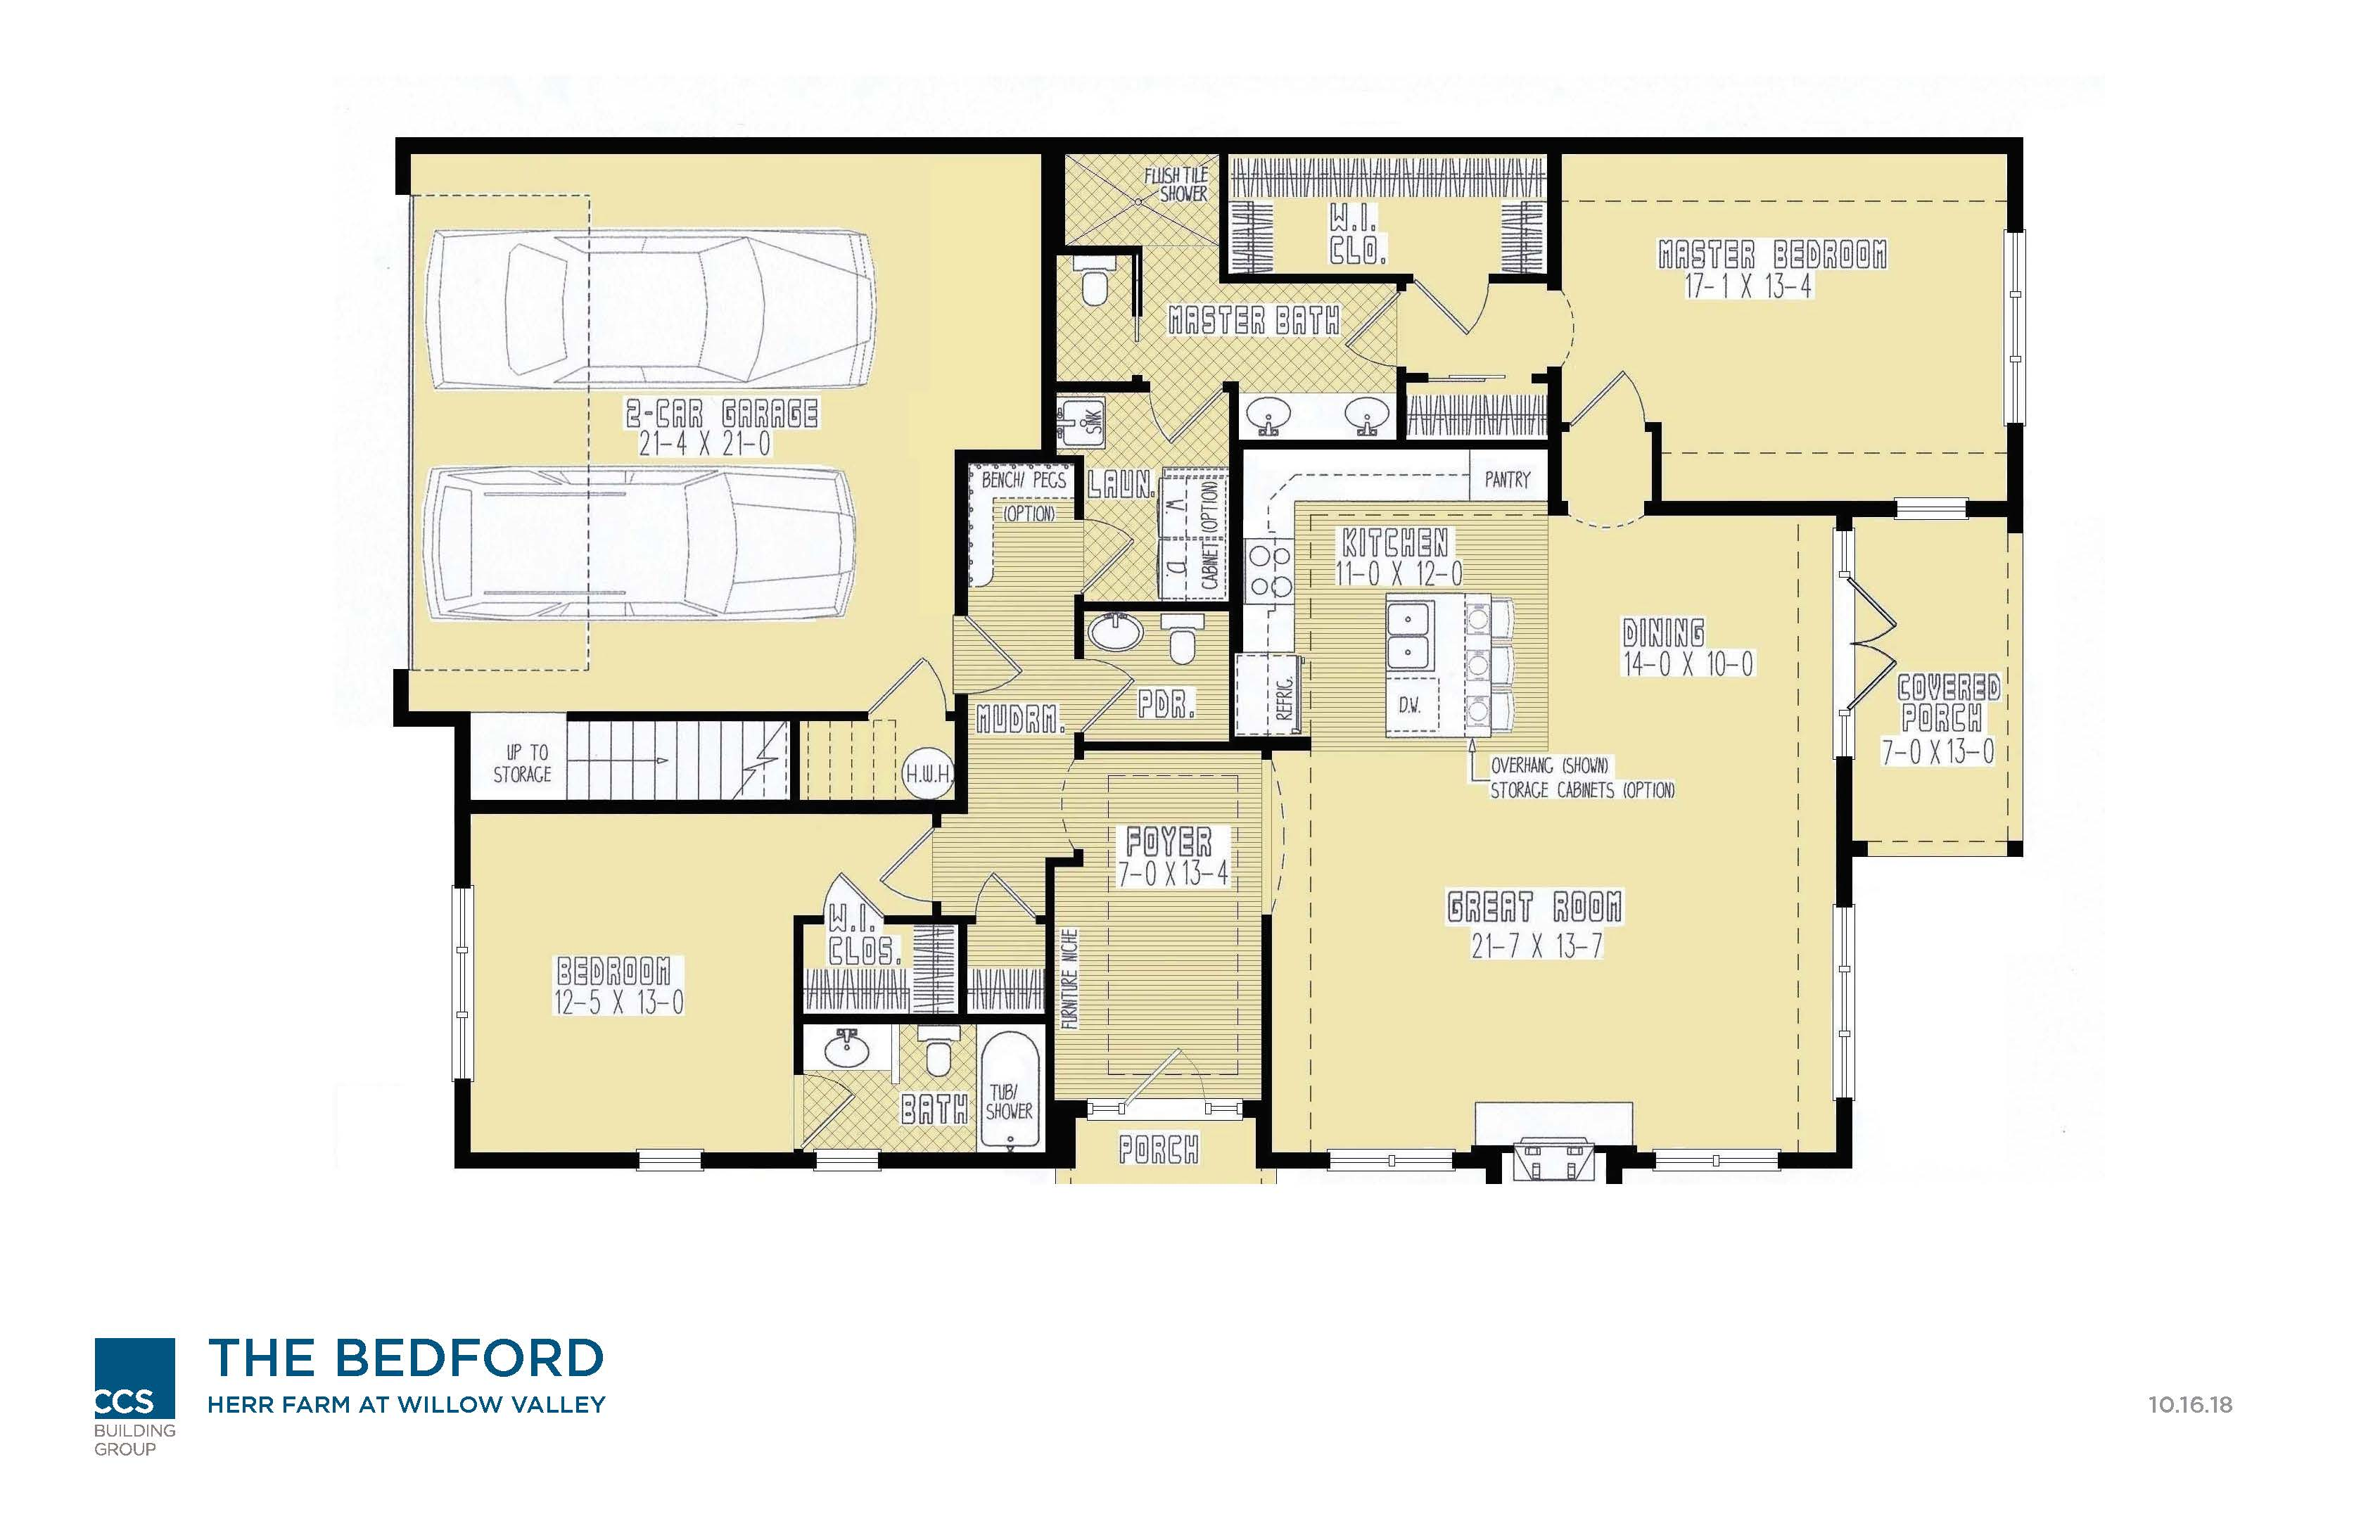 Villa Floor Plan - The Bedford